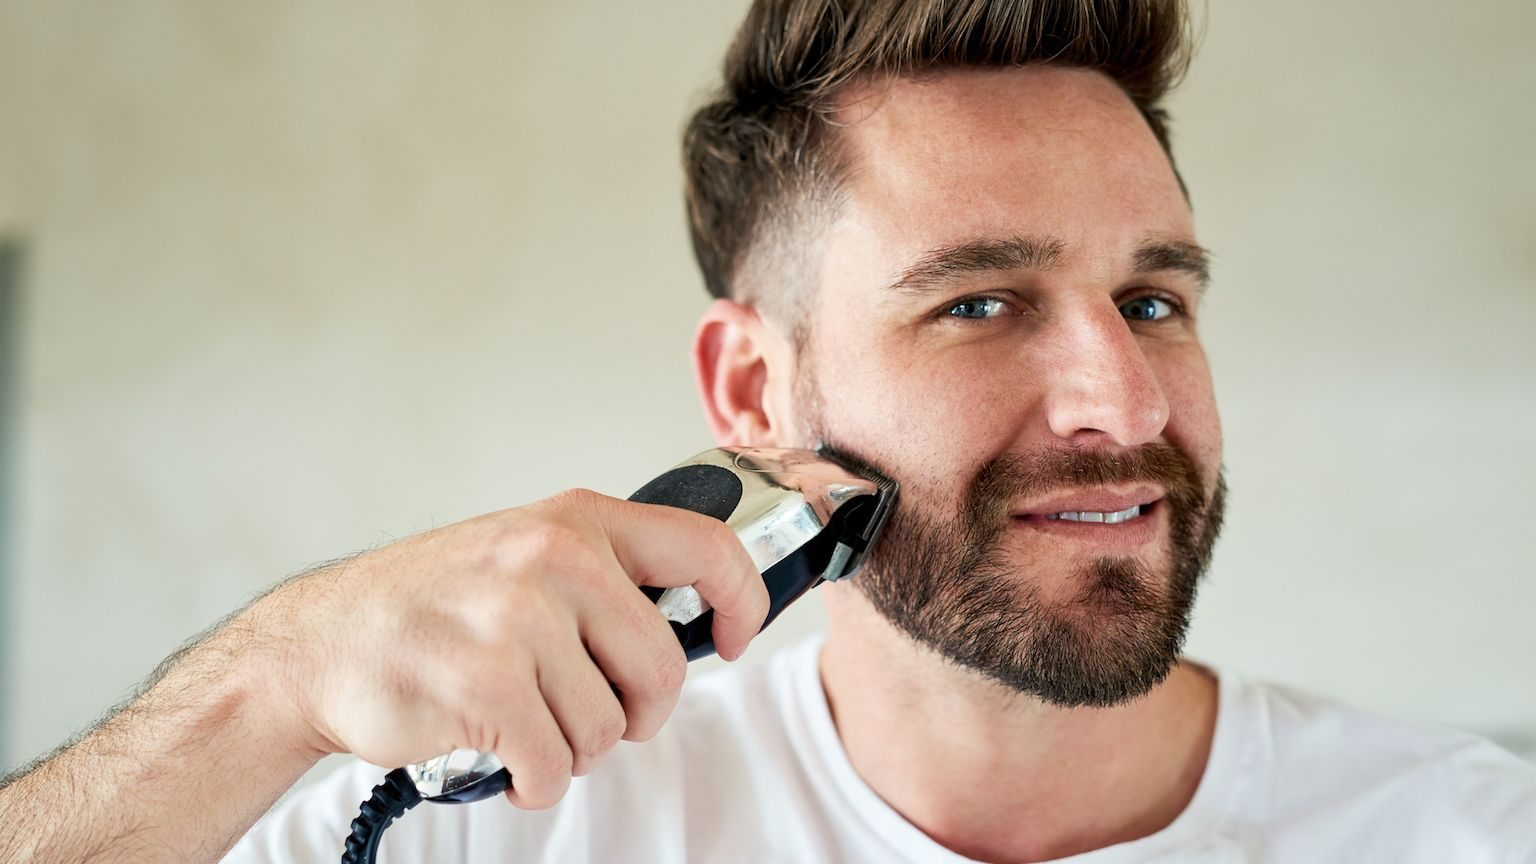 Man using a beard trimmer